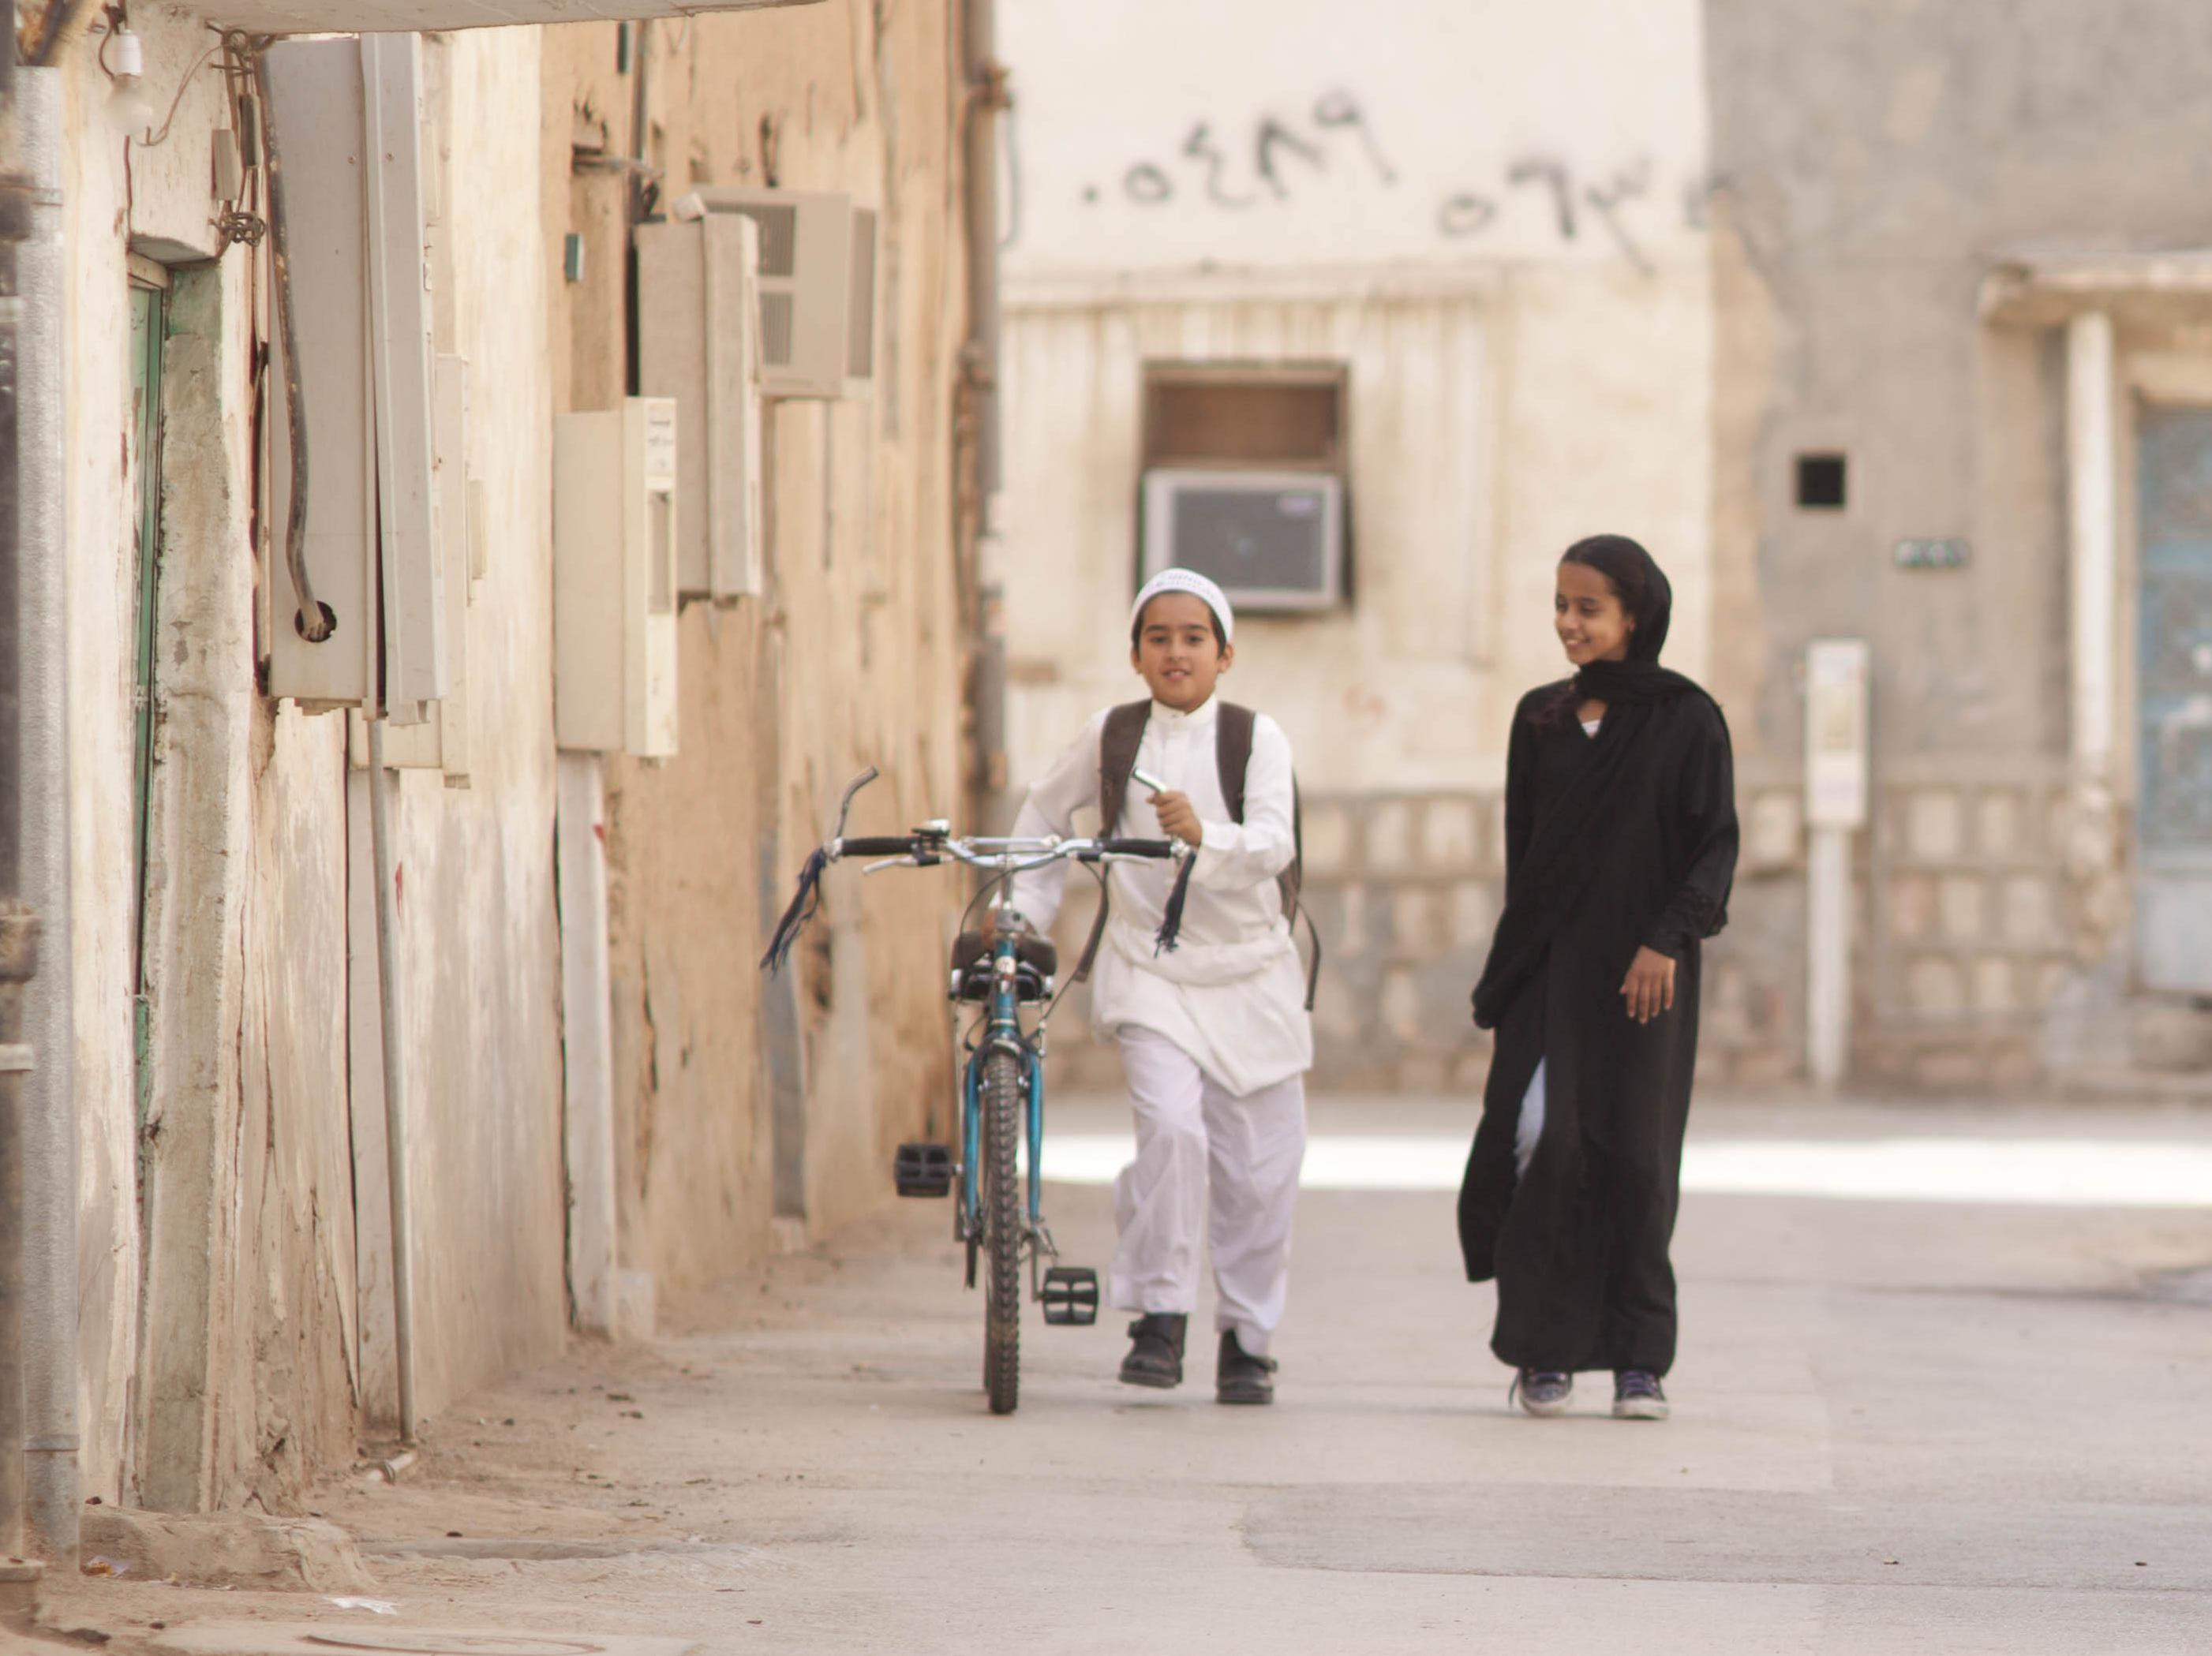 Saudi's First Female Film Director Says Women Aren't Victims